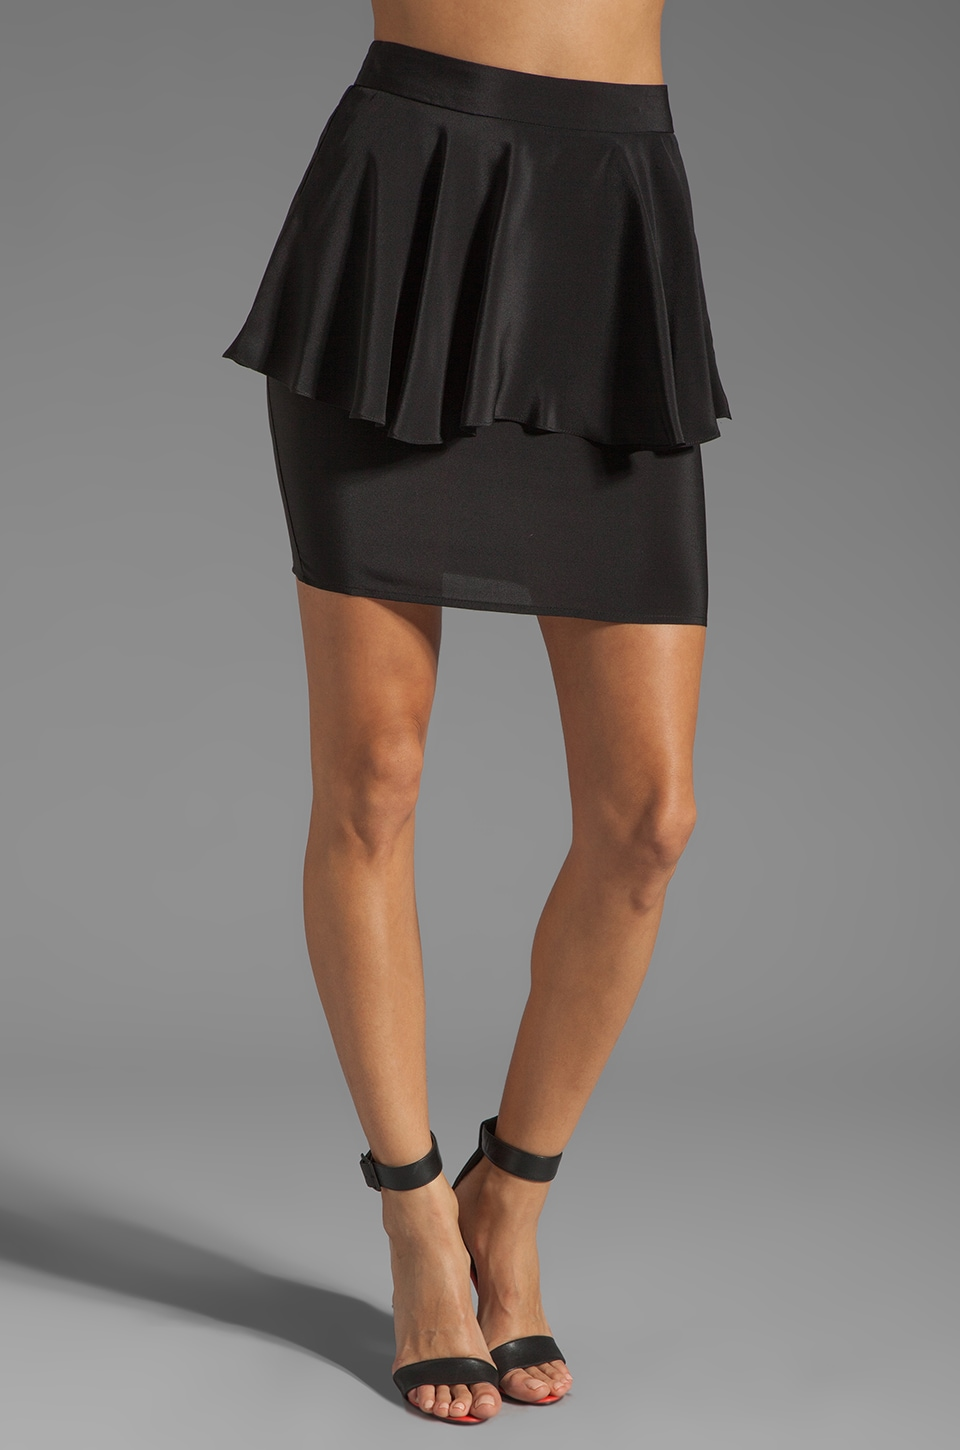 Amanda Uprichard Silk Peplum Skirt in Black